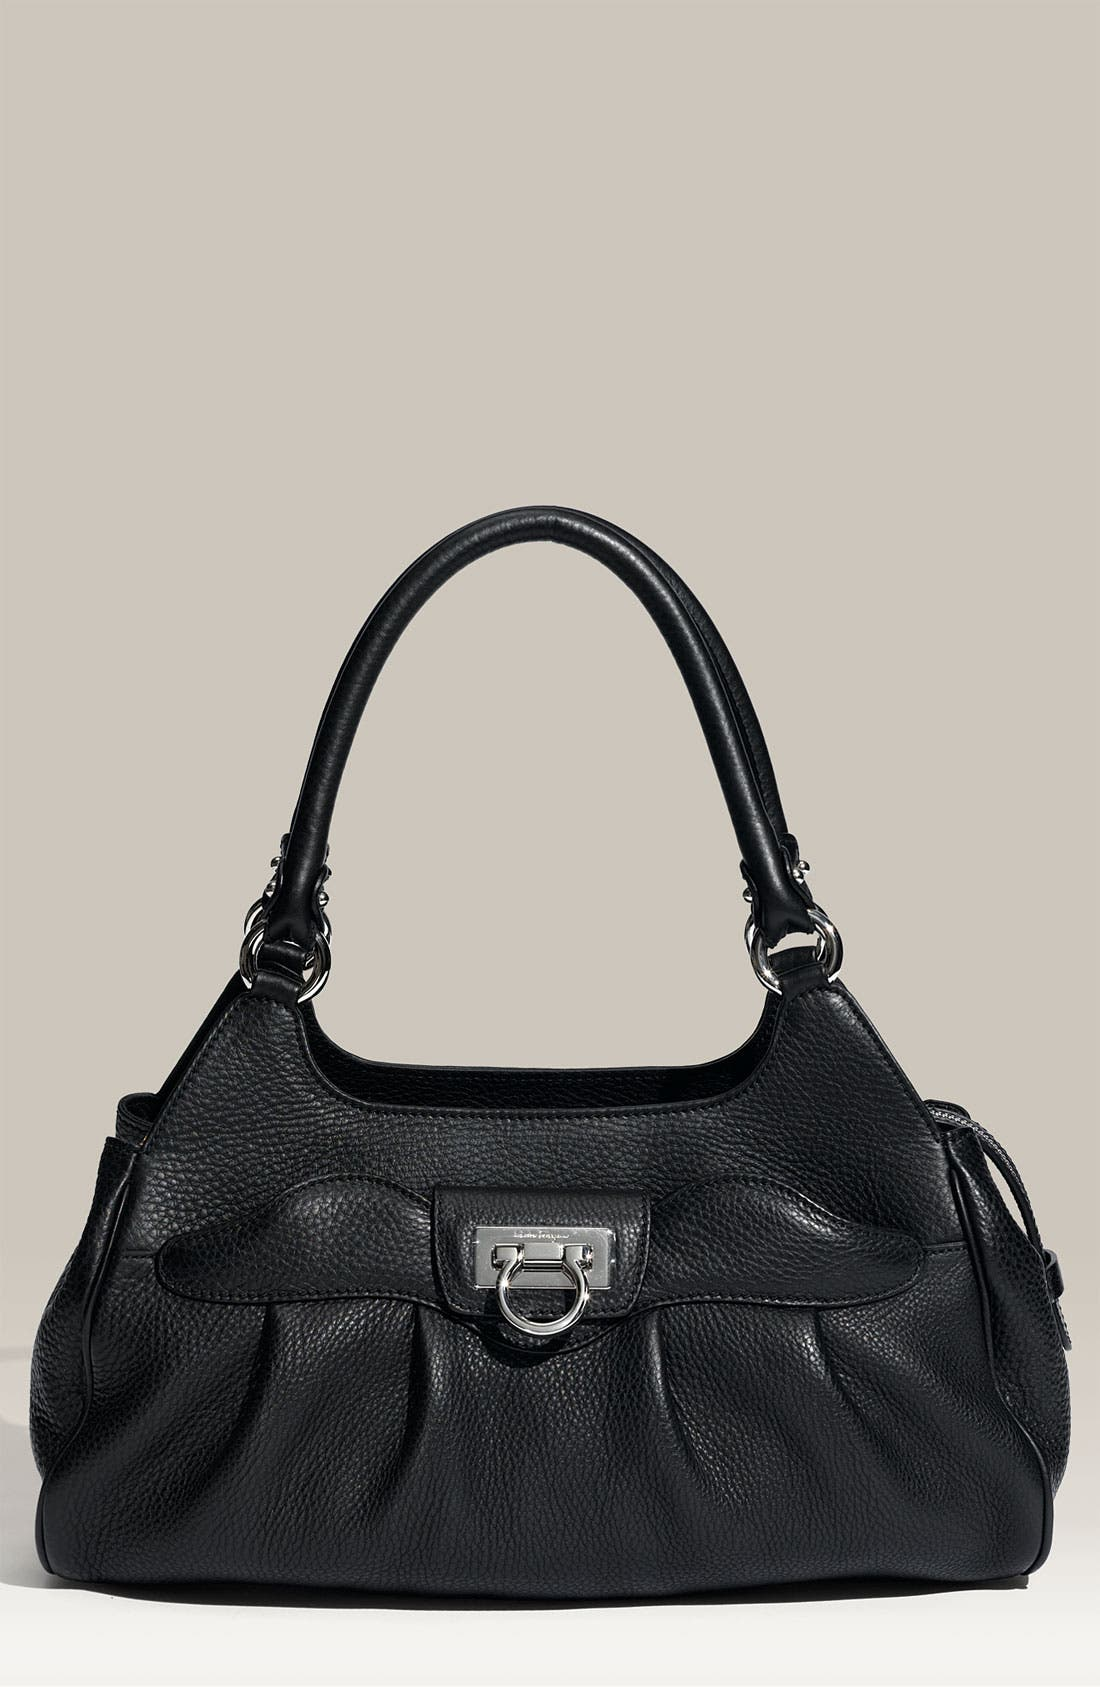 Main Image - Salvatore Ferragamo 'Vitello' Leather Shopper